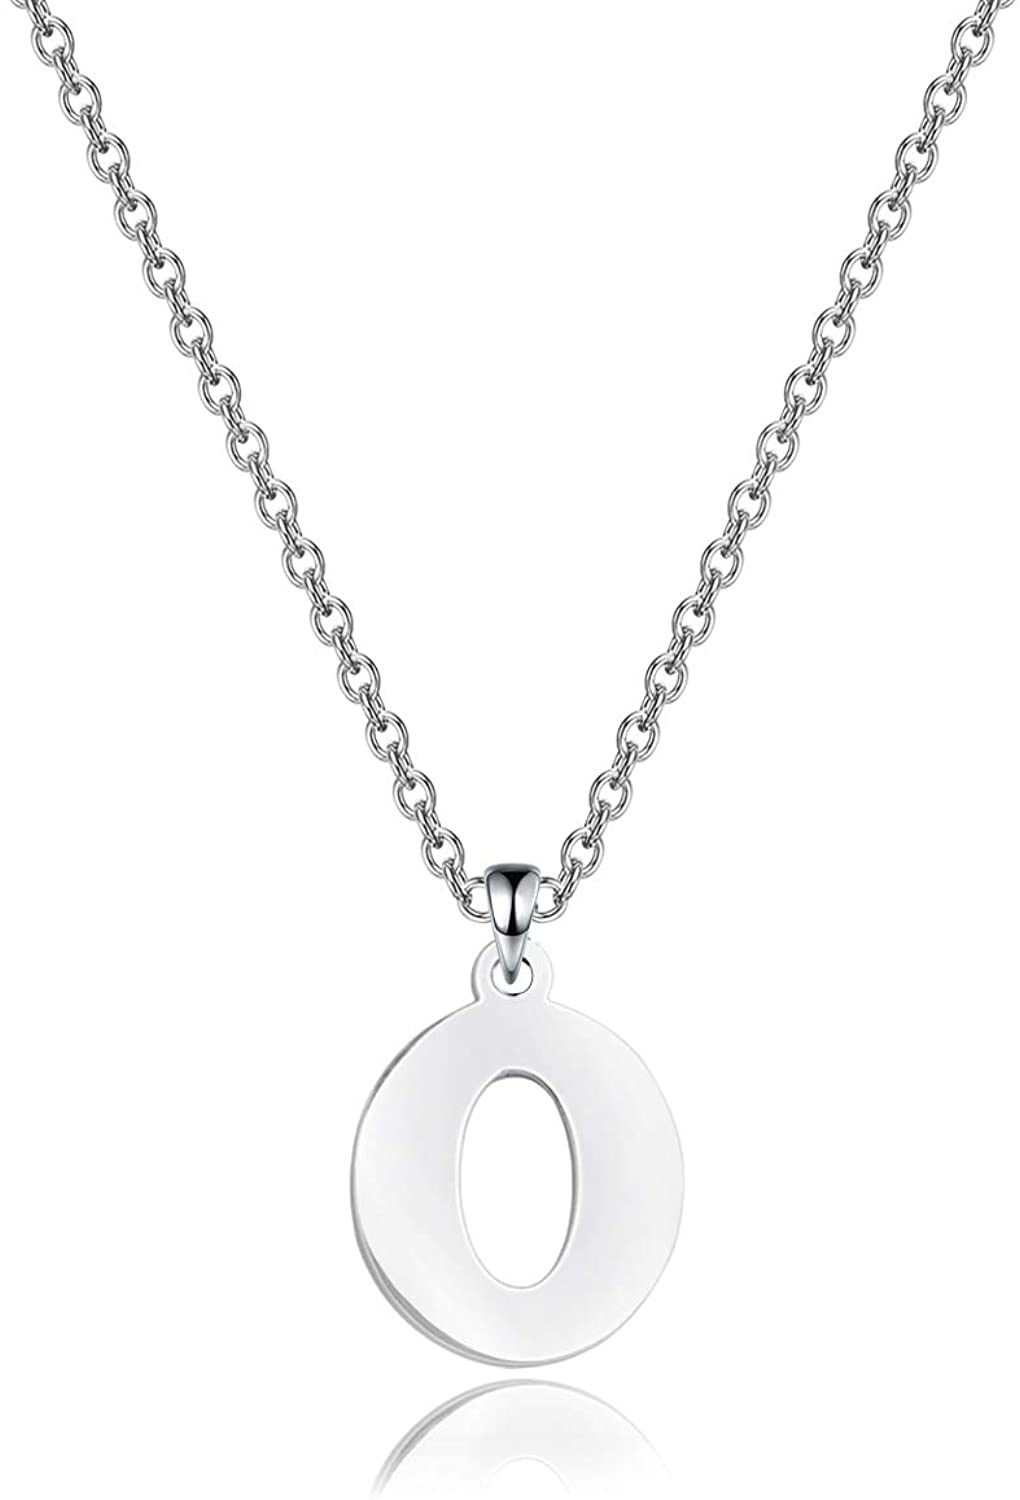 ENSIANTH Lucky Number Necklace Stainless Steel Pendant Necklace Best friend Gift Birthday Gift Number 0-9